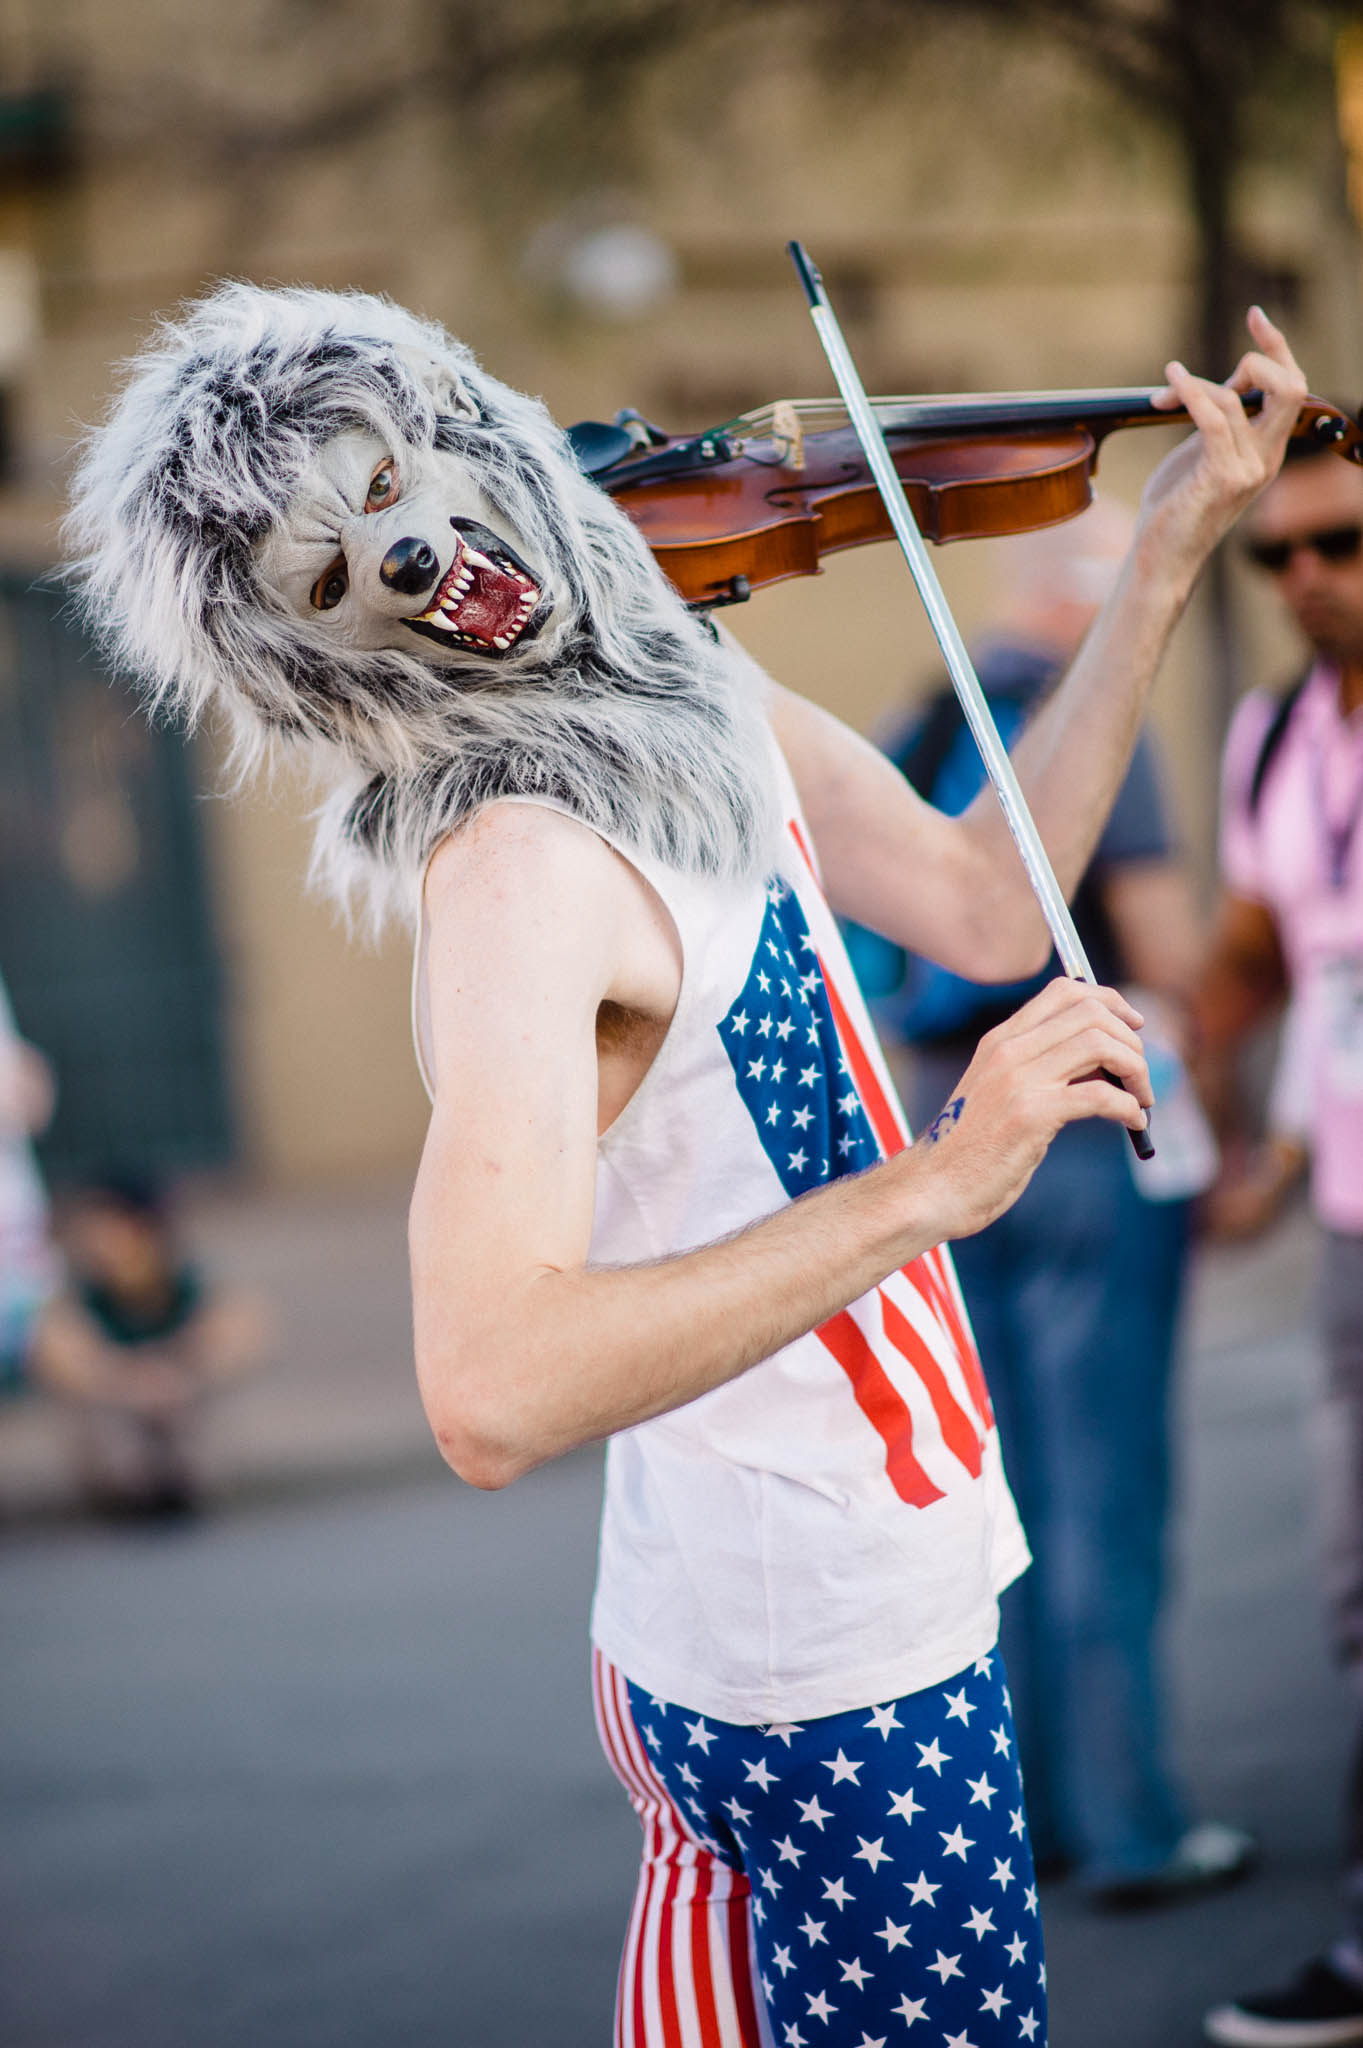 Werewolf violinist: Spooky, scary.